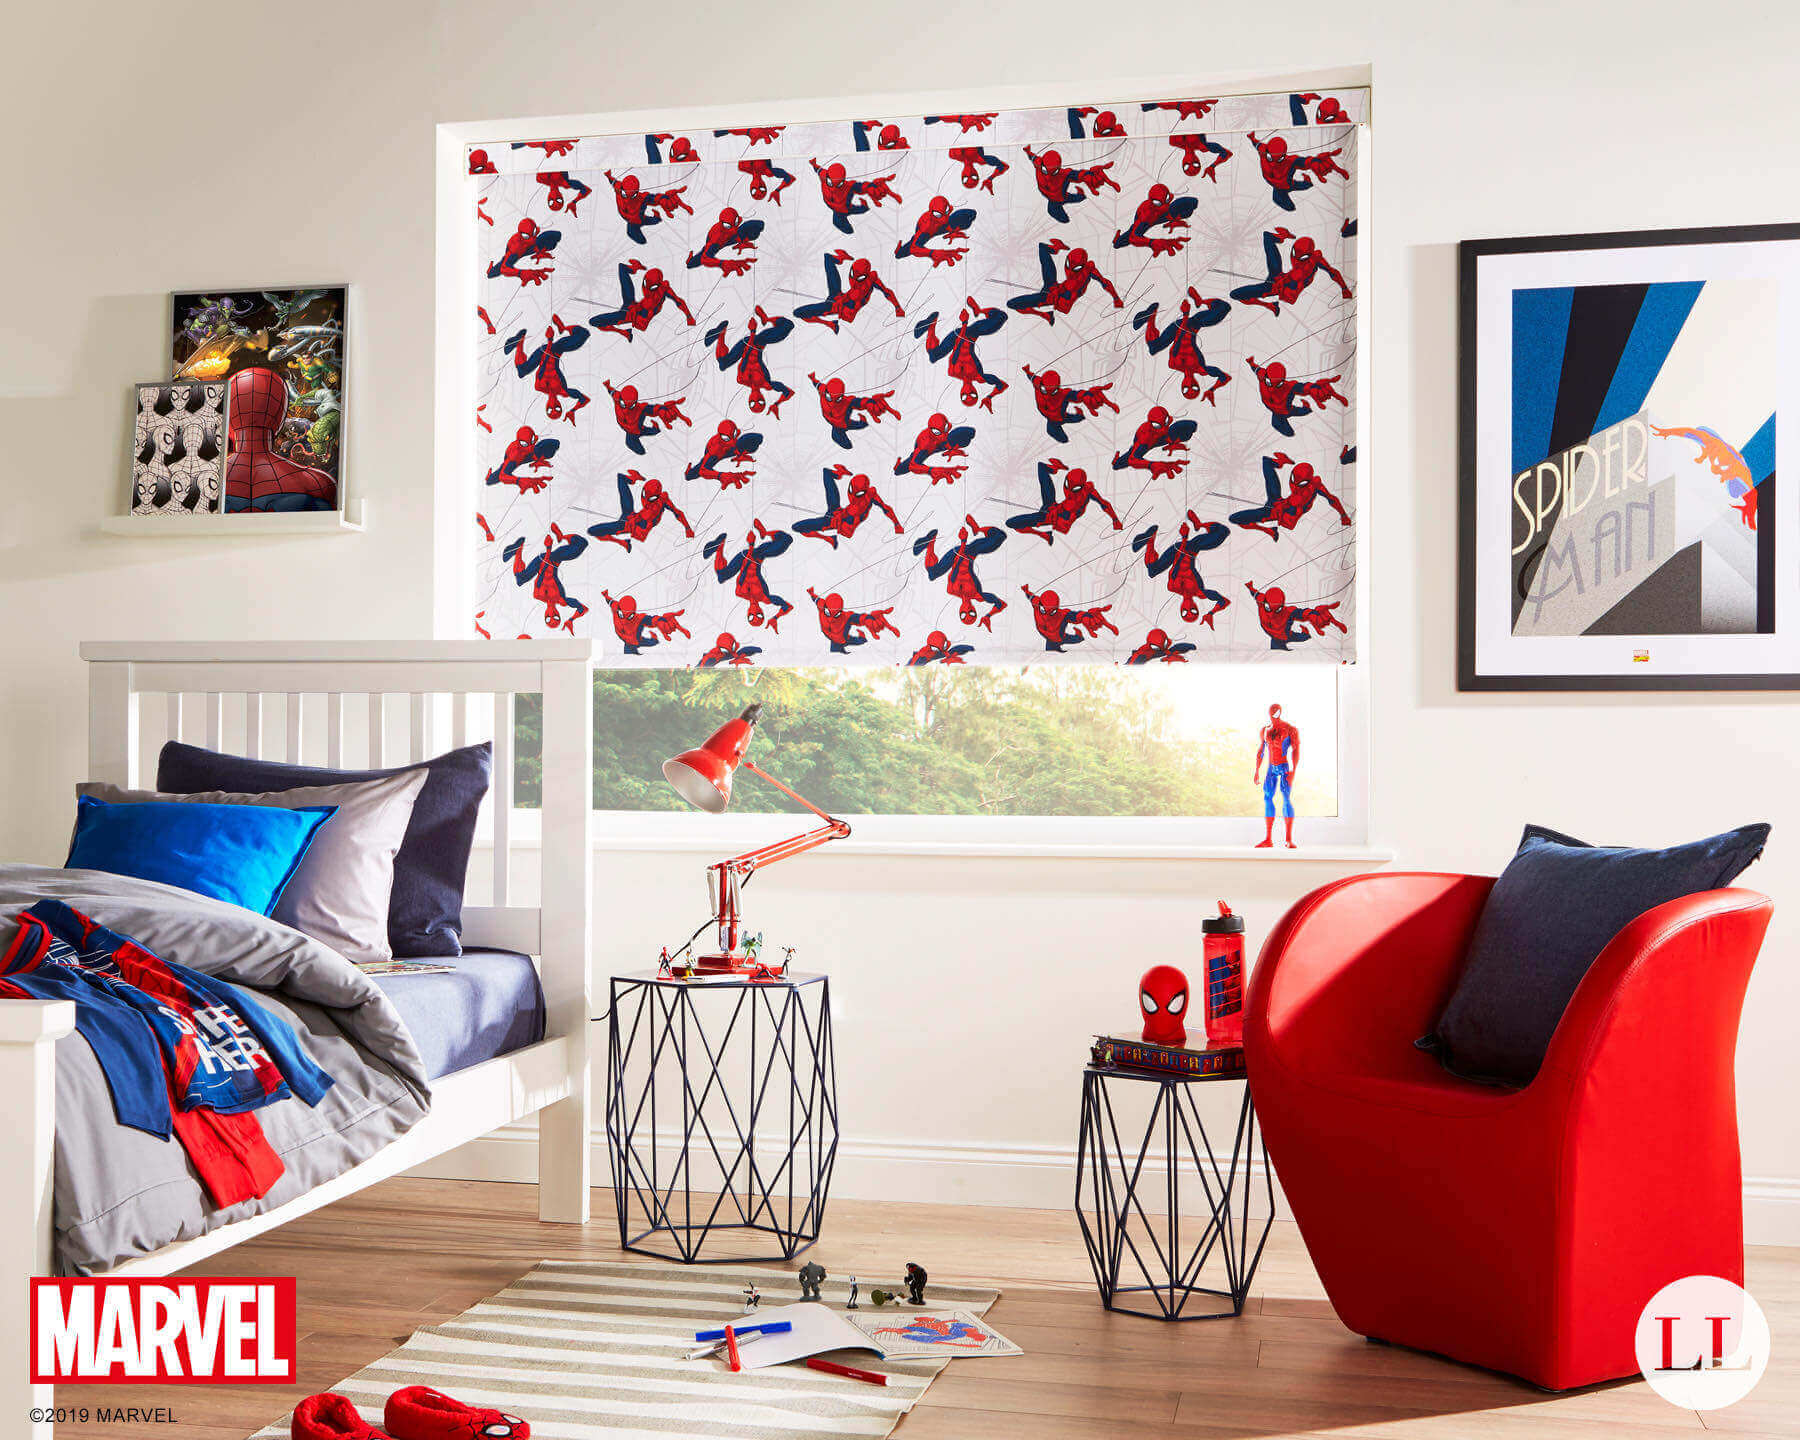 Spiderman Marvel Roller Blinds Runcorn Liverpool